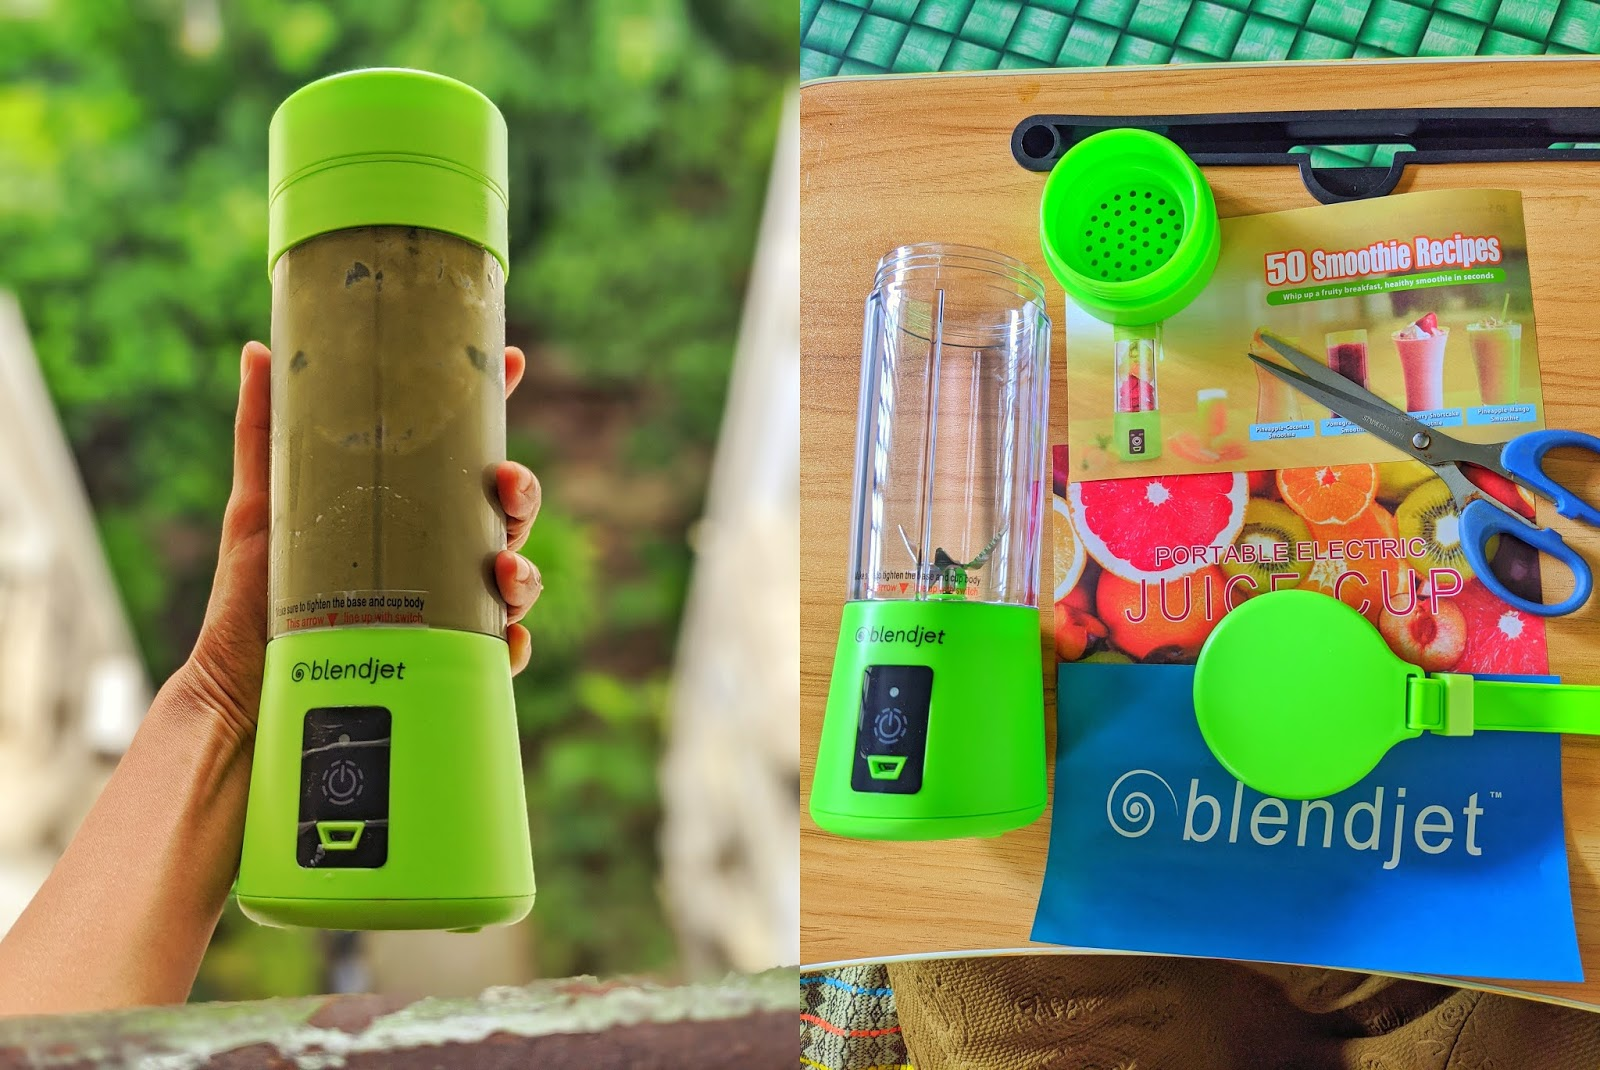 blendjet portable blender review